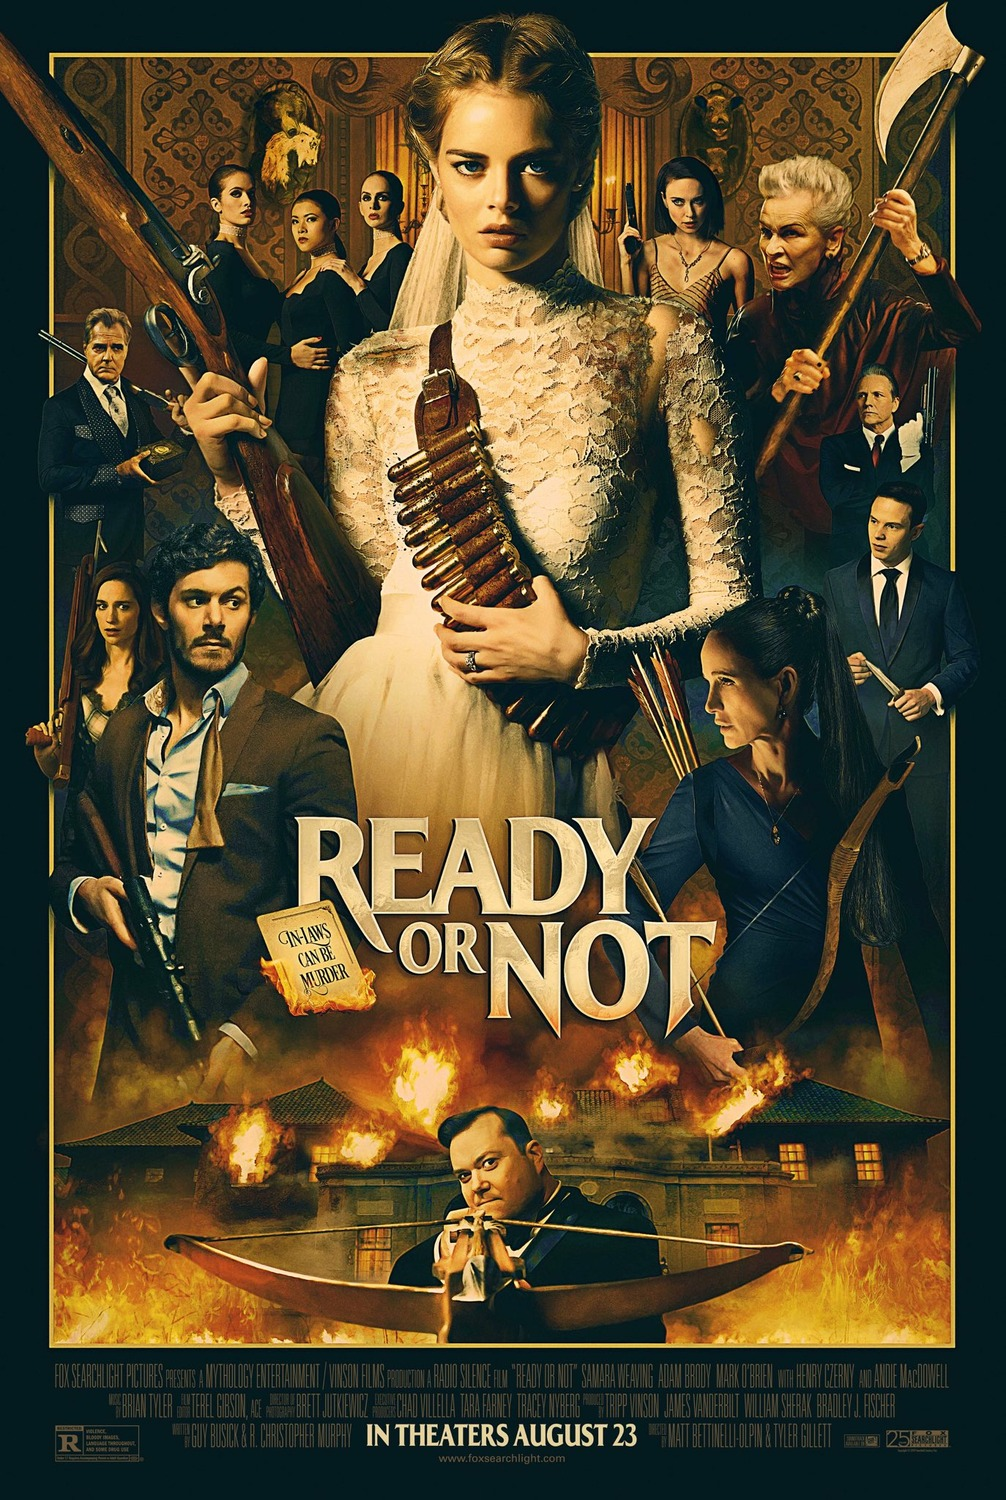 Ready.or.Not.2019.INTERNAL.1080p.BluRay.x264-RENDEZVOUS